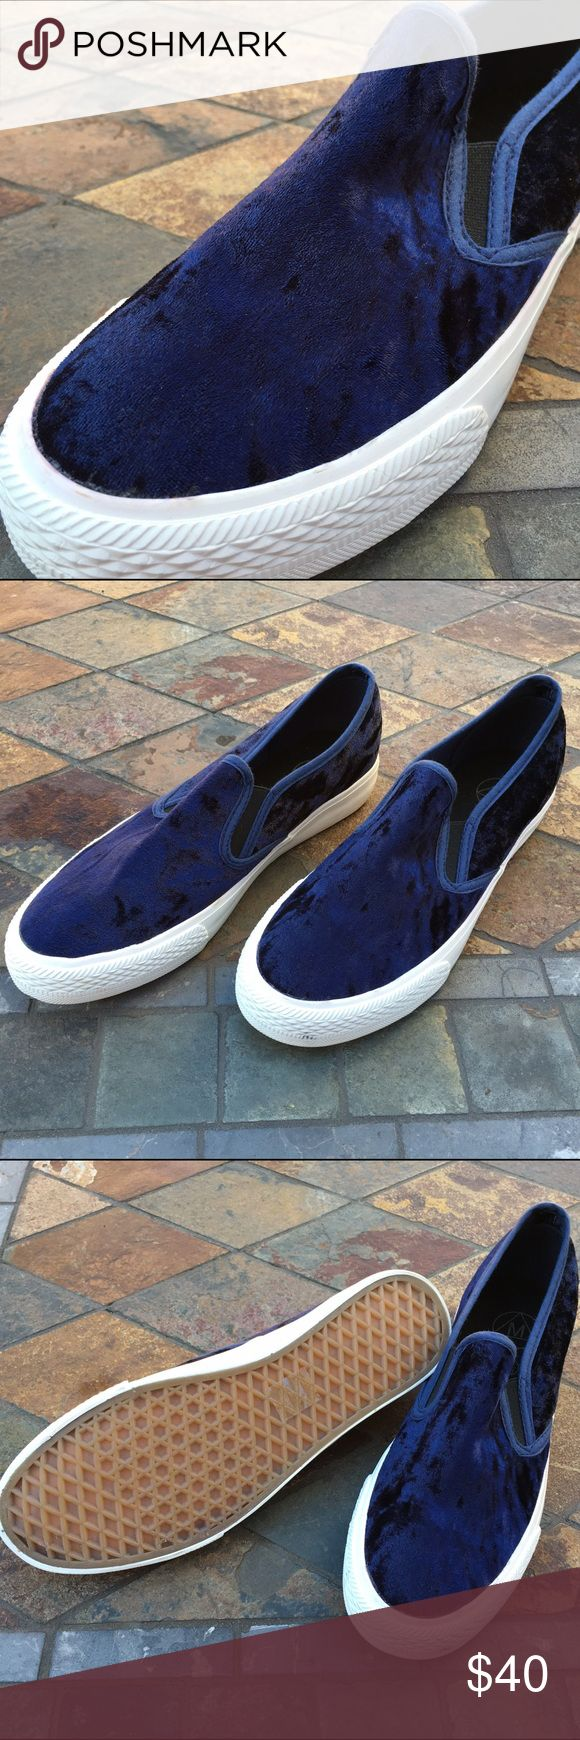 "🆕Slip On Sneakers Dark Blue Velour🍃🍂 Unisex - Dark blue velour slip on sneakers have stretch elastic on both sides of shoe ""tongue"". Makes it easier to slip on and stay on the foot. White edges. **Shoes are labeled Mens 7/40. Will also fit Women's 10/40. Measurements are 10"" long from toe box to heal & 3.5"" widest point before toe box.** Never worn & in excellent new condition. NWT Shoes Sneakers"